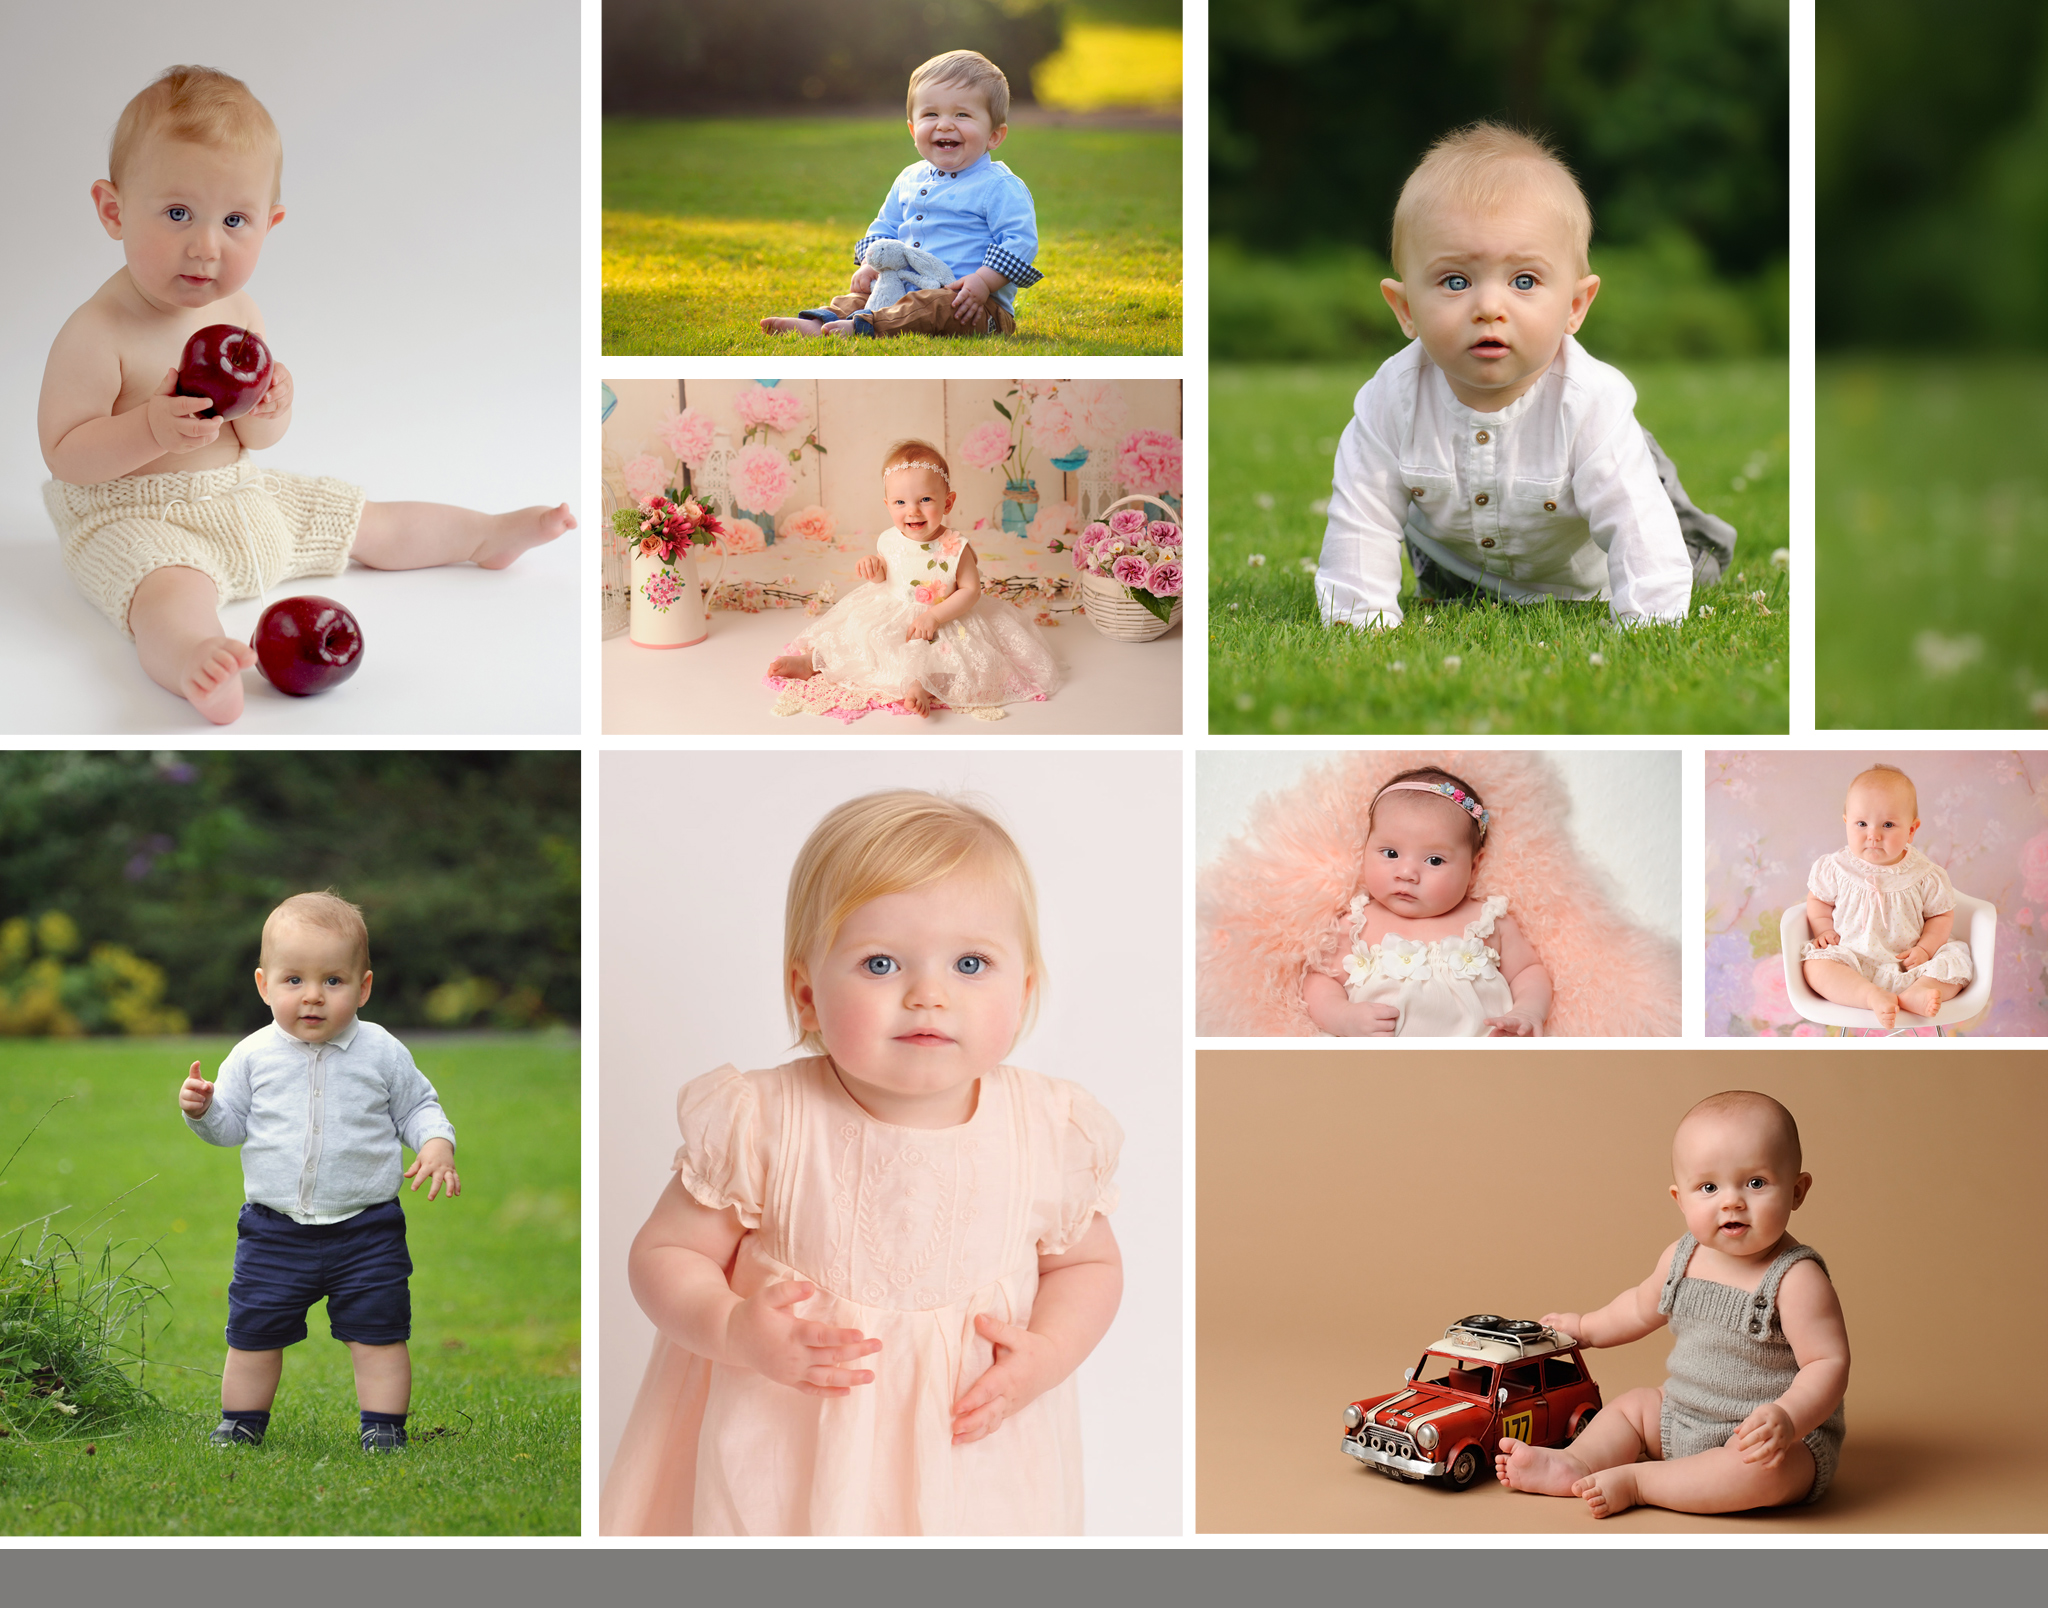 Baby Photography Packages, A&T Gancarz Photography, Tom Gancarz, Aneta Gancarz